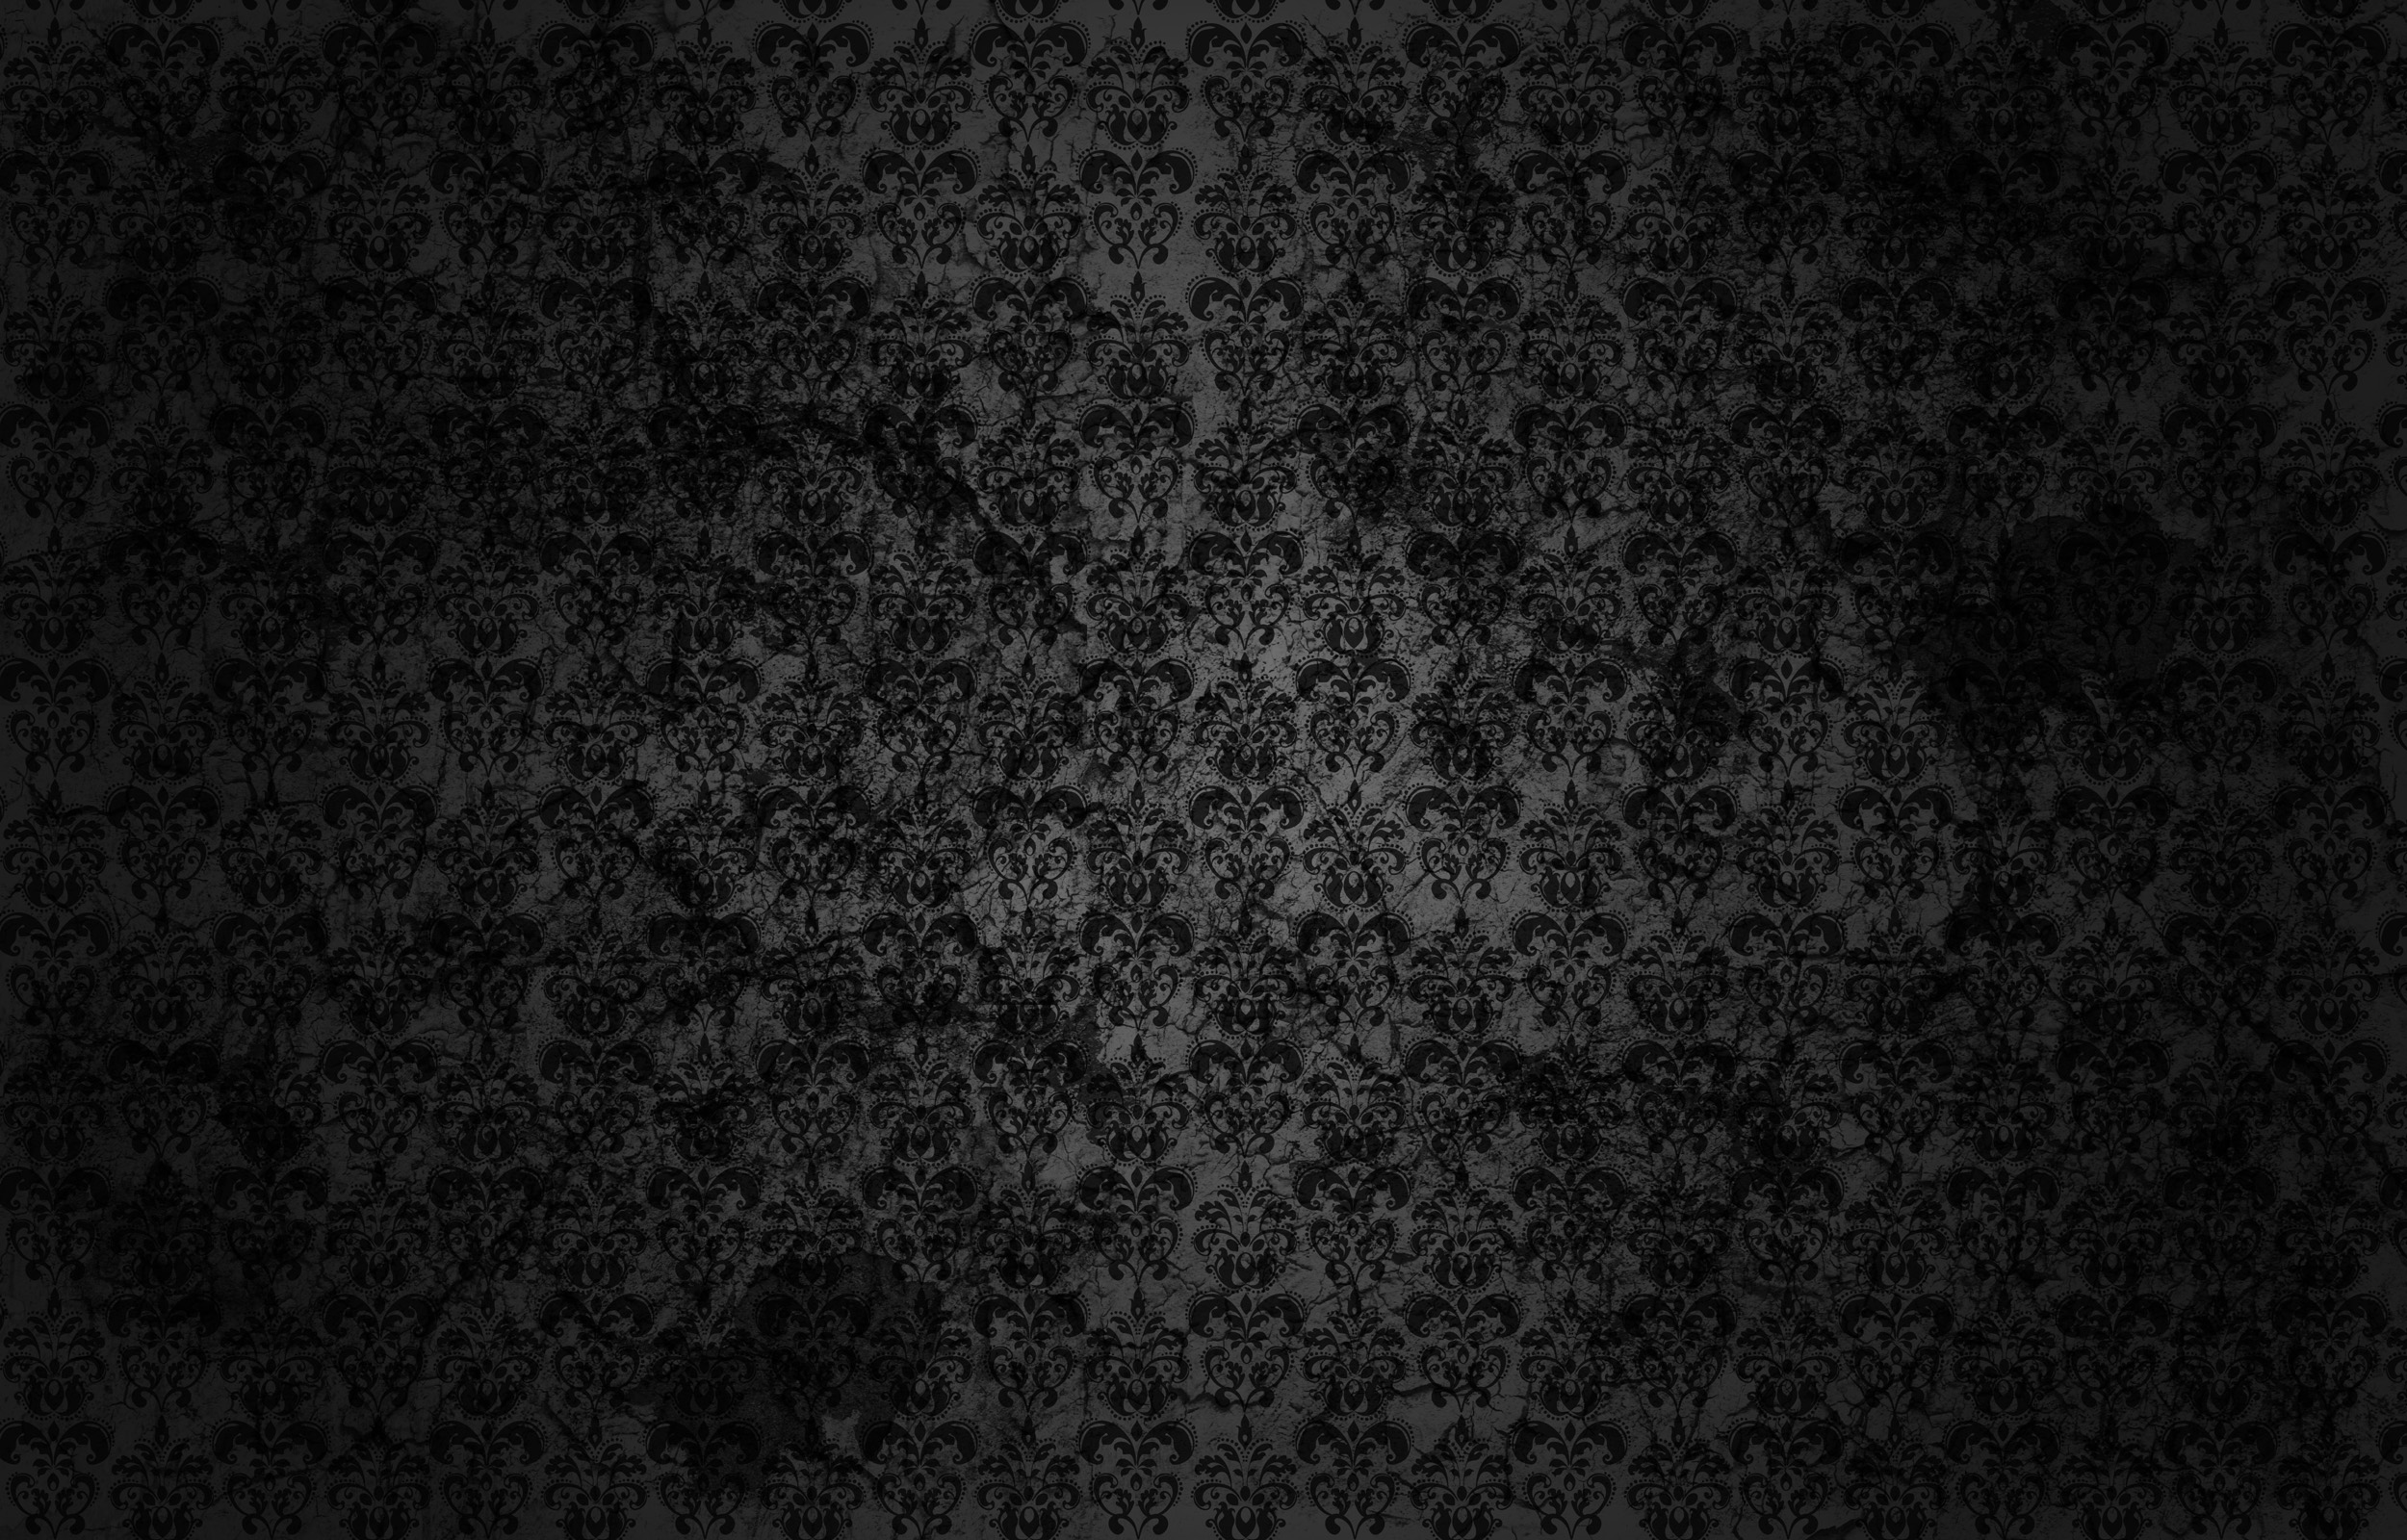 Black Backgrounds 22 Desktop Background - Hdblackwallpaper.com